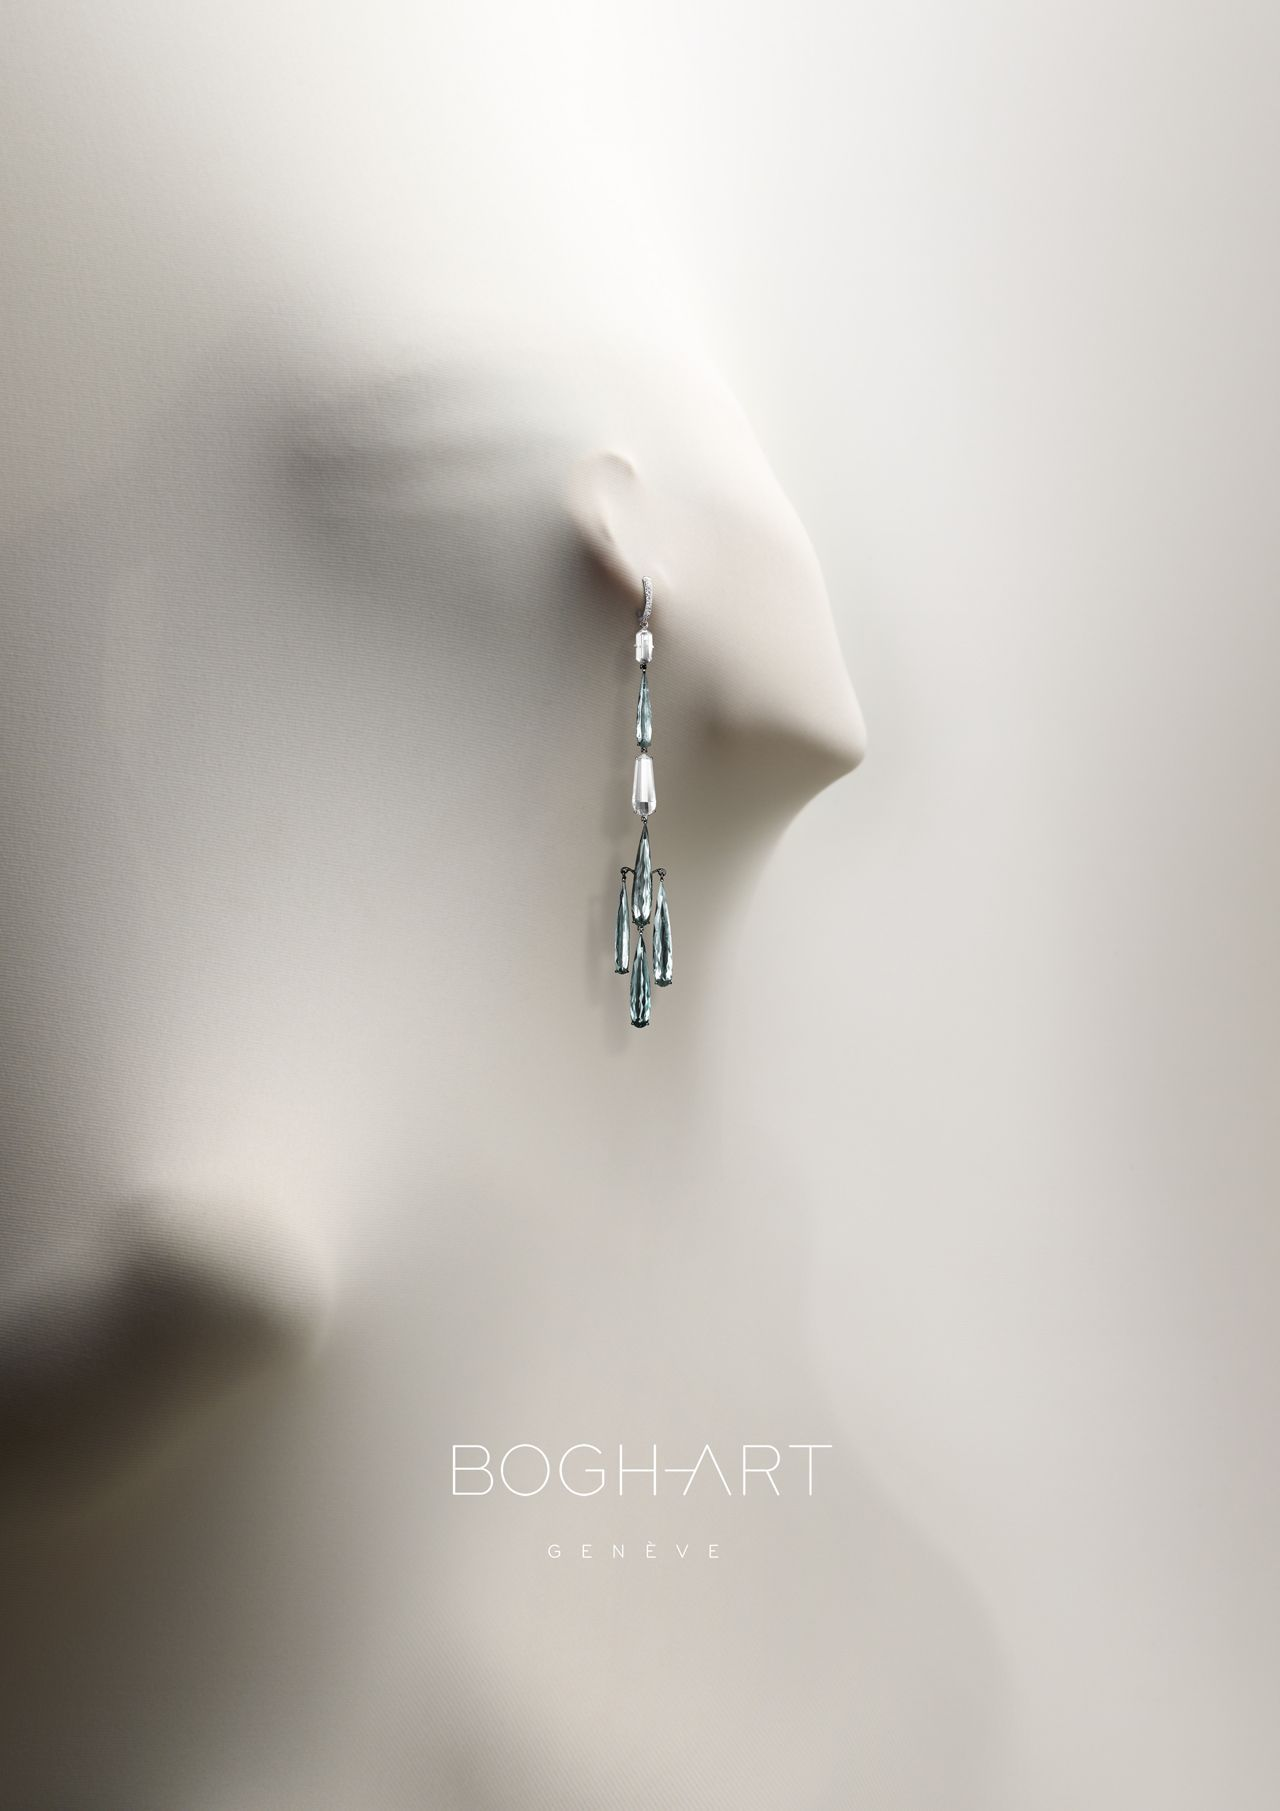 Bogh Art Geneve Print Ad Kind Of Creepy But Very Elegant Jewelry Photography Styling Jewelry Photography Jewelry Editorial